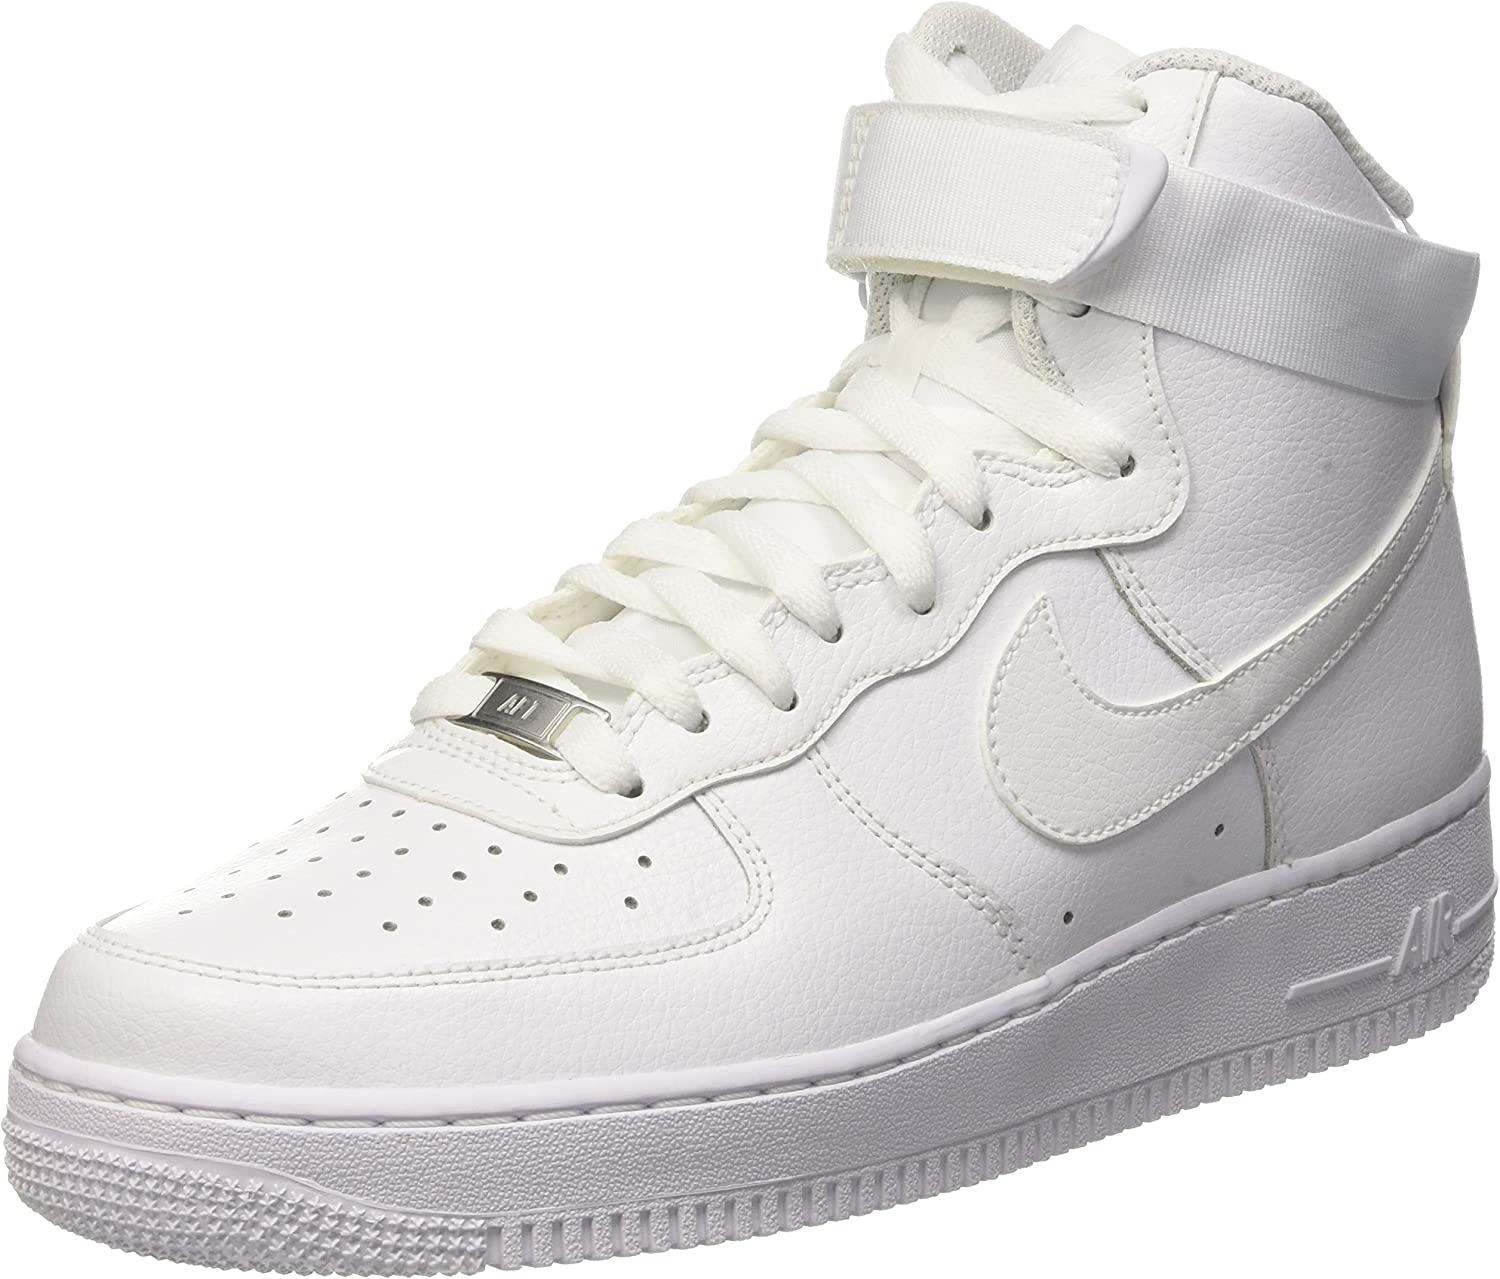 Nike Men's Air Force 1 High '07 Lv8 Basketball shoes